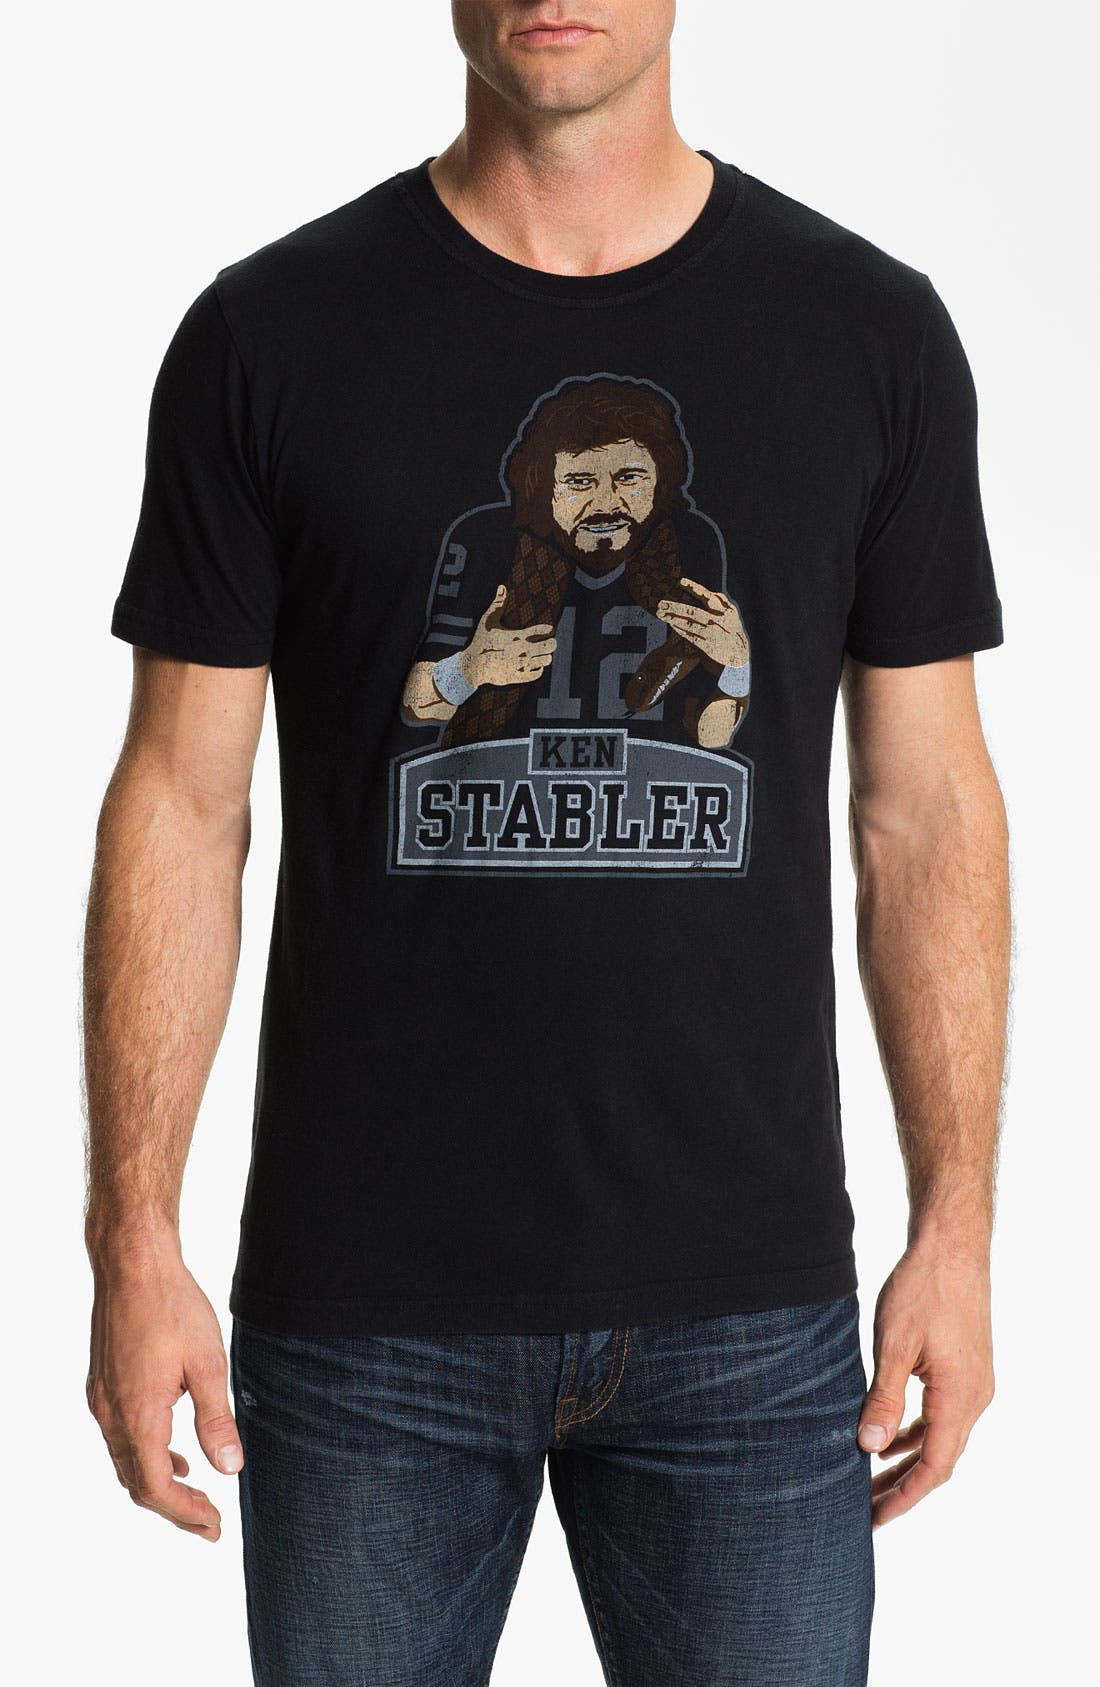 Alternate Image 1 Selected - Red Jacket 'Hyperbole - Ken Stabler' T-Shirt